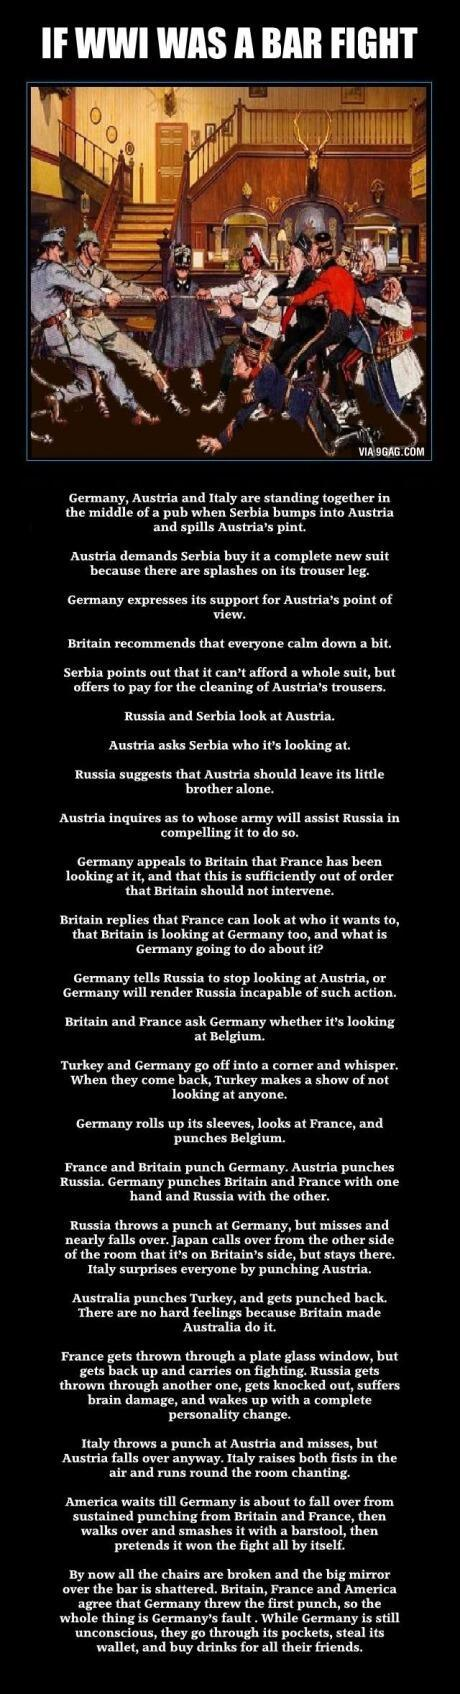 if world war I was a bar fight